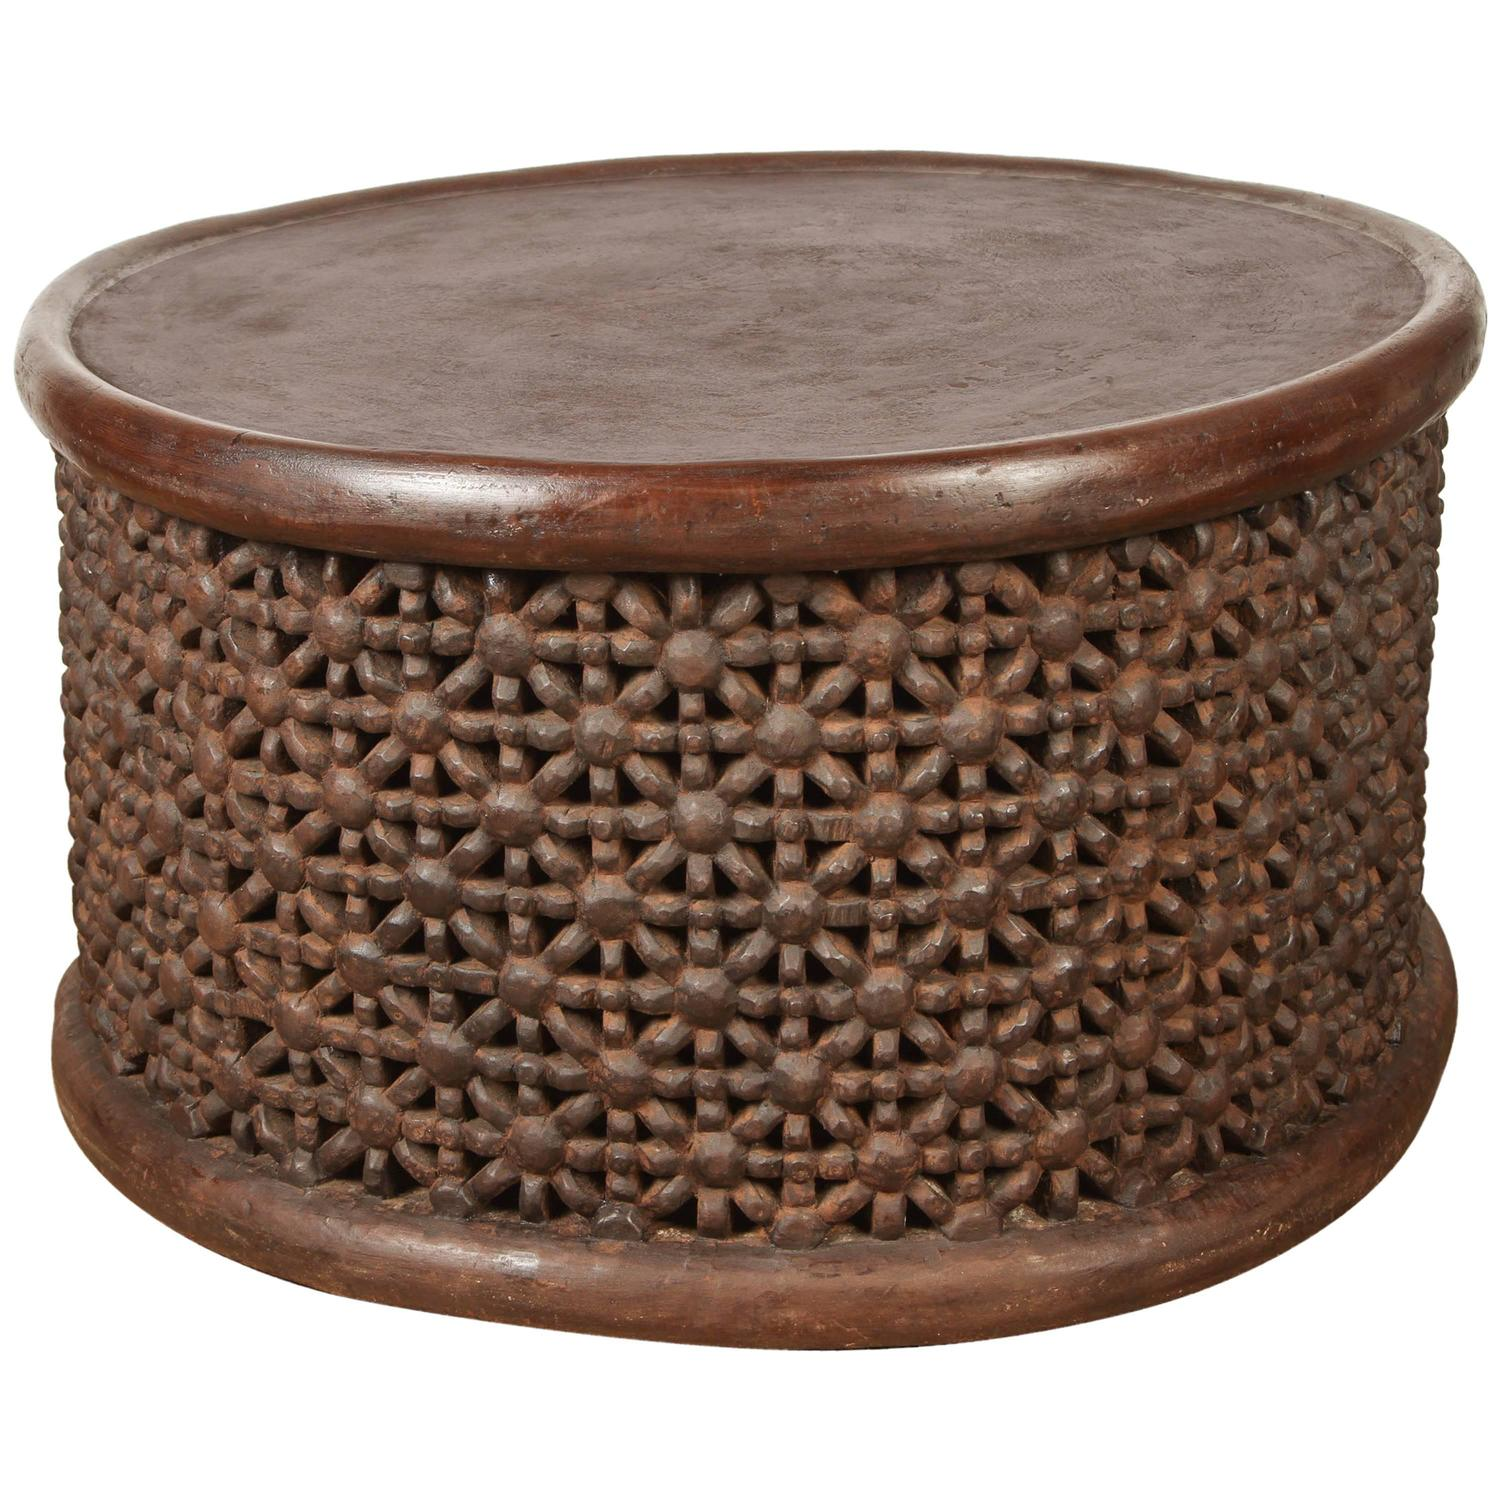 Elegant african drum coffee table African coffee tables